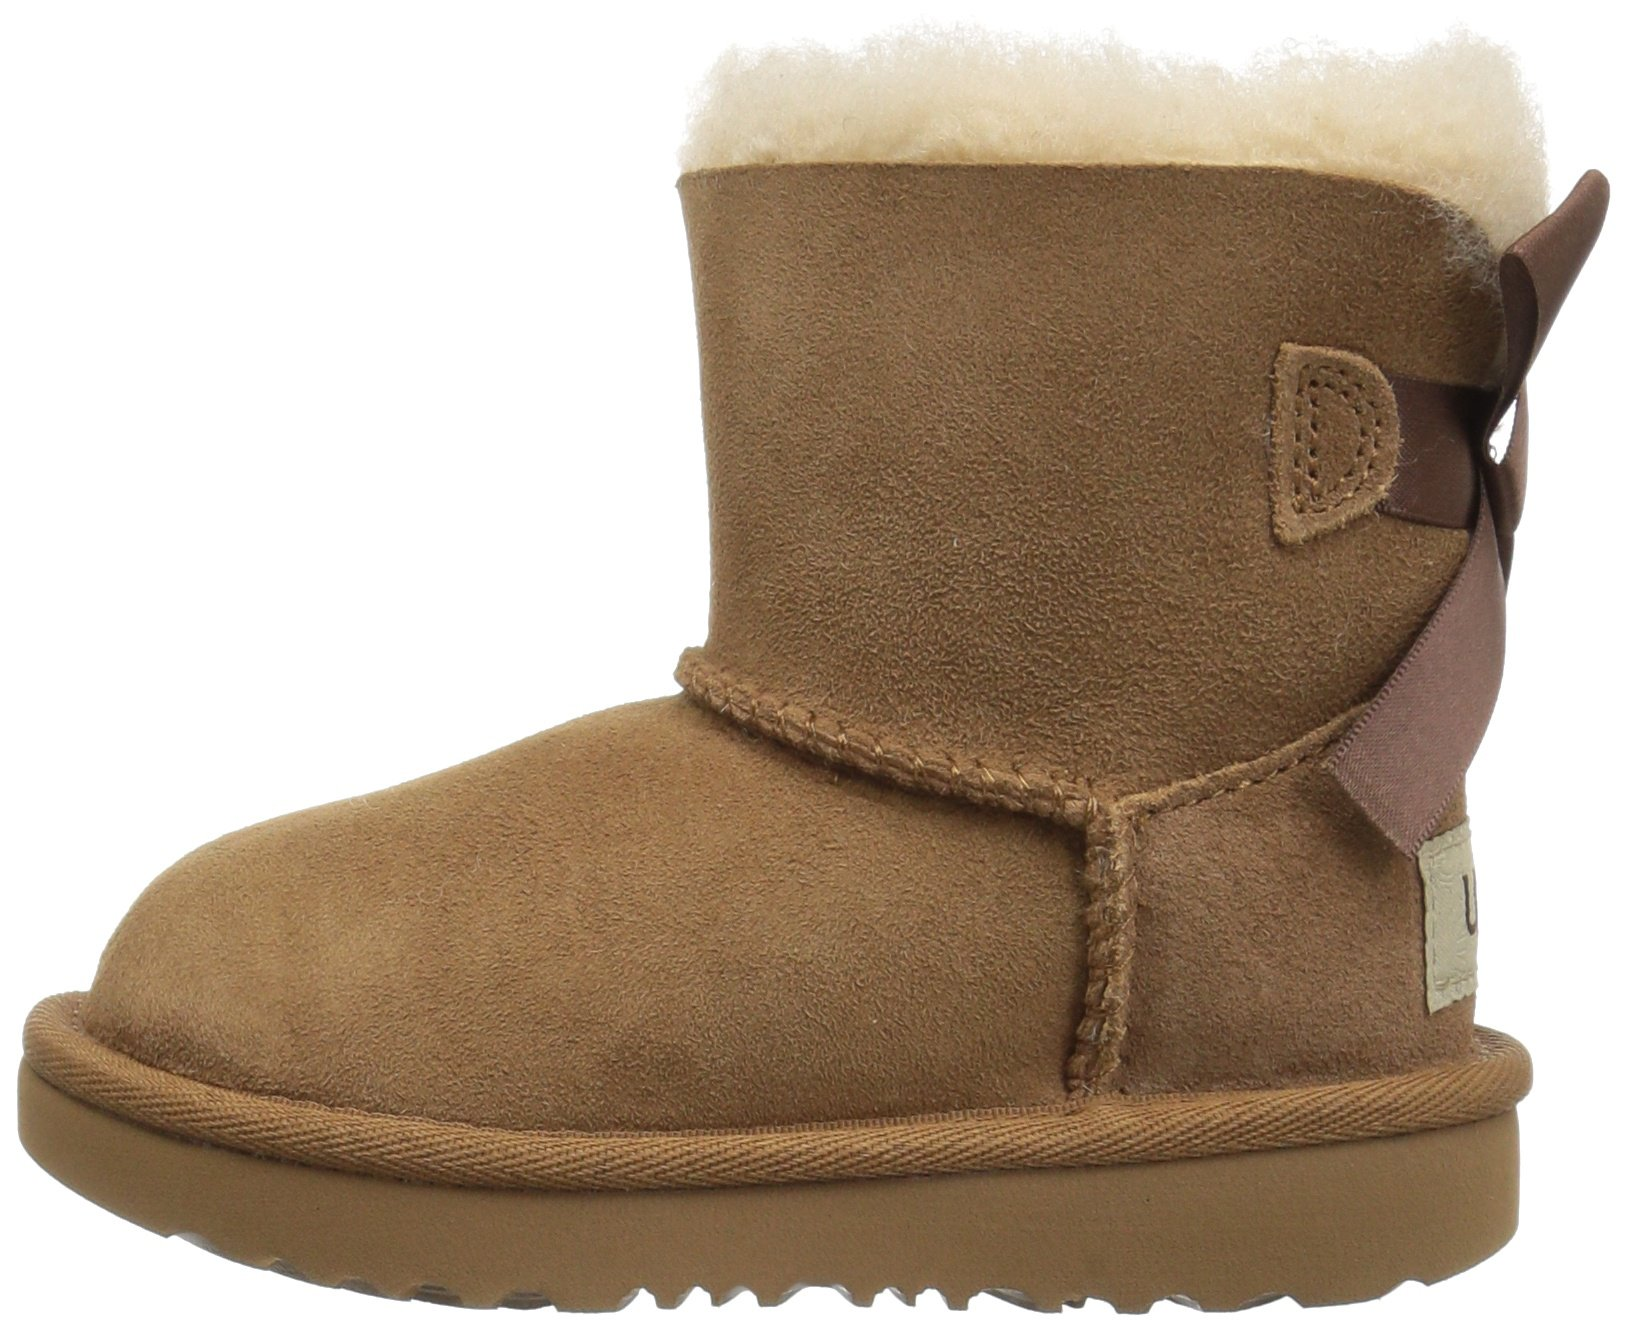 UGG Girls T Mini Bailey Bow II Pull-on Boot, Chestnut, 12 M US Little Kid by UGG (Image #5)